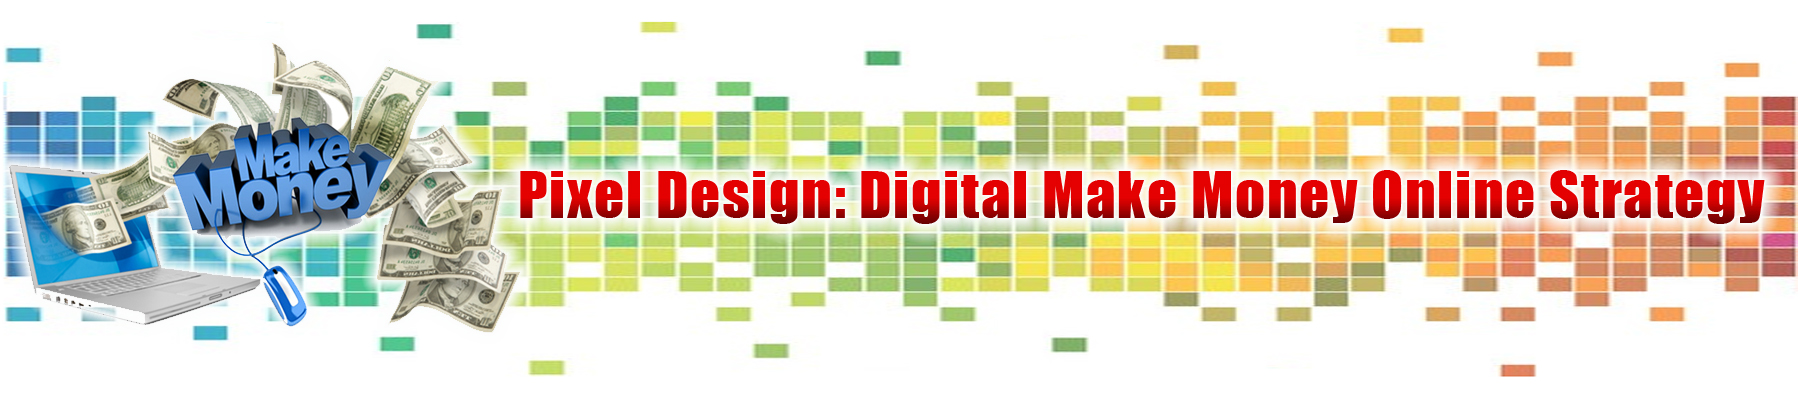 Pixel Design: Digital Make Money Online Strategy